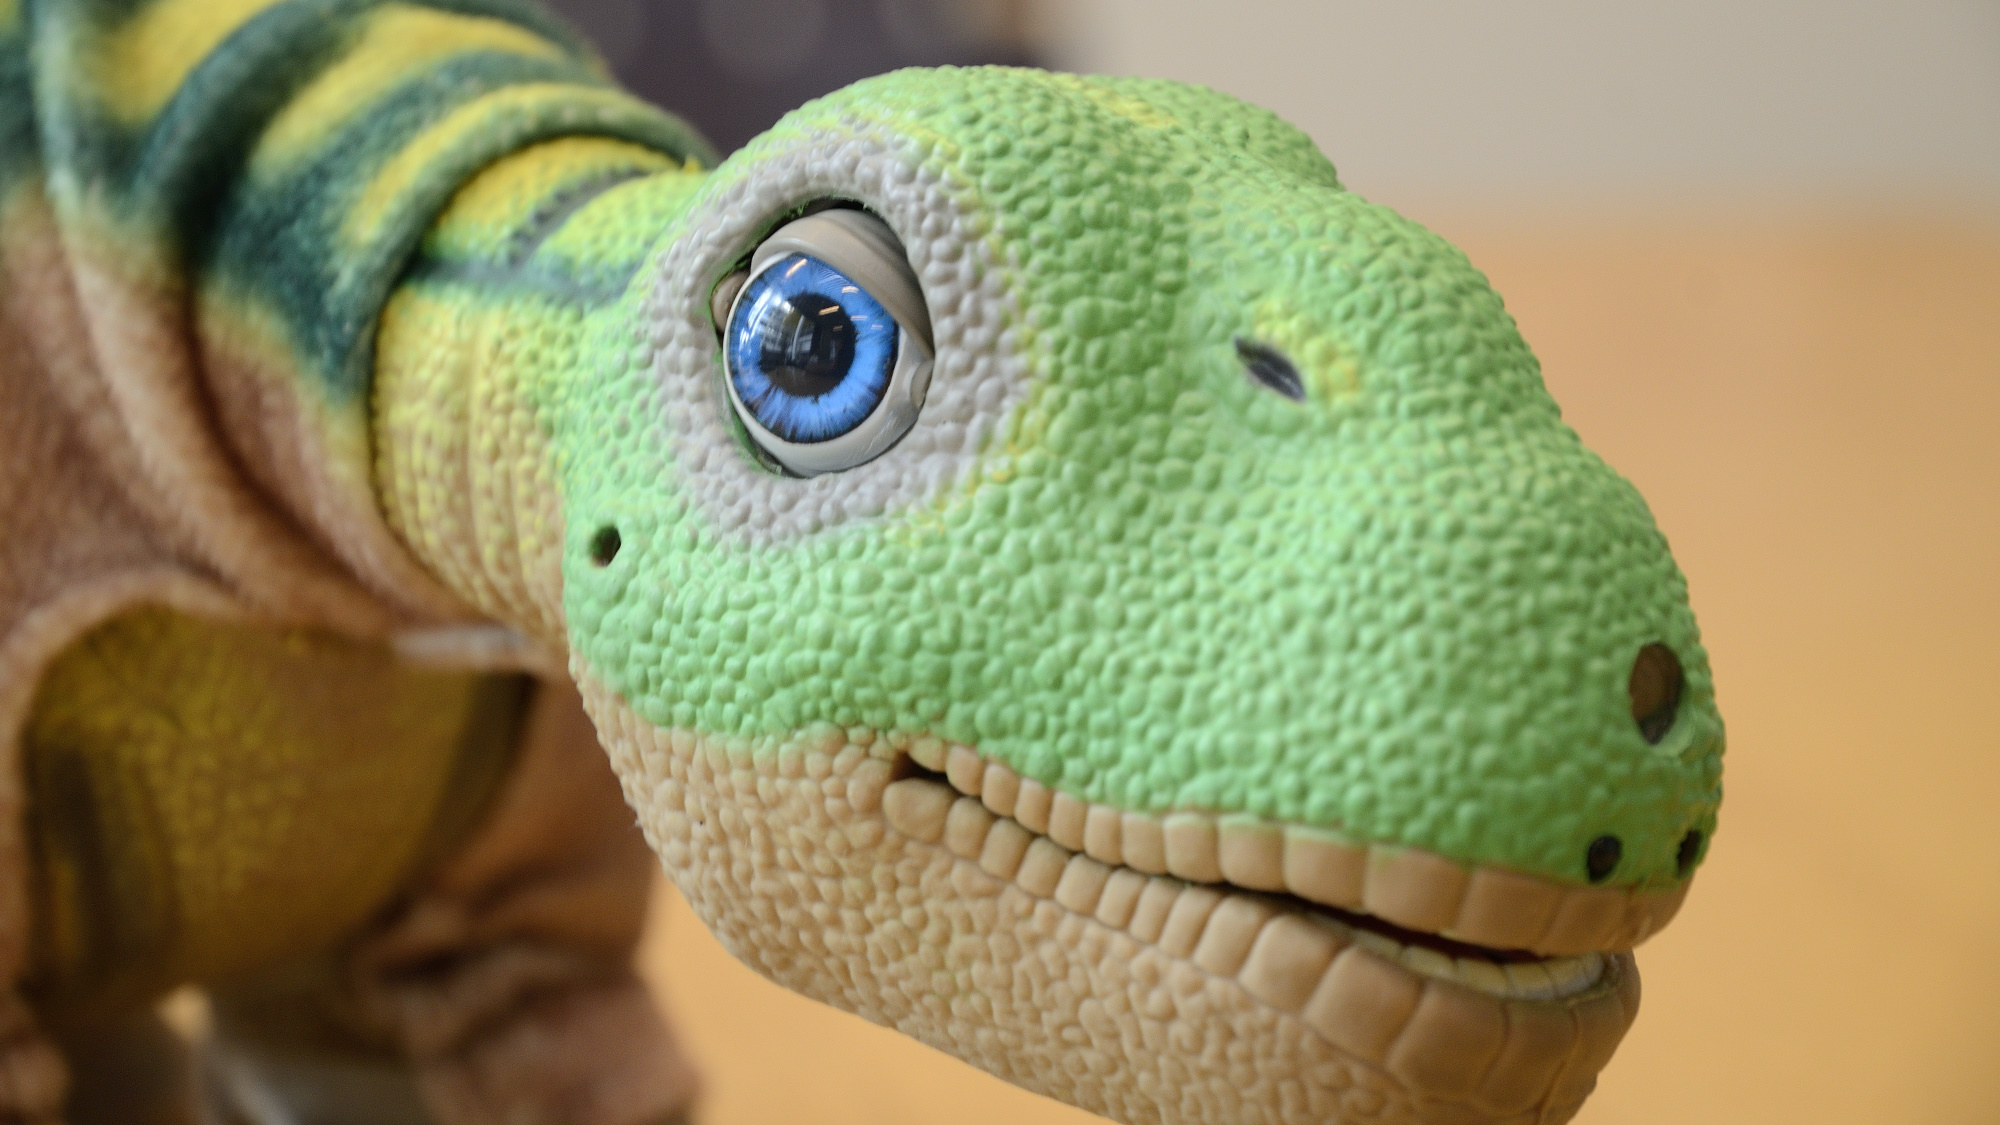 A Pleo robot has large, expressive and movable eyes.